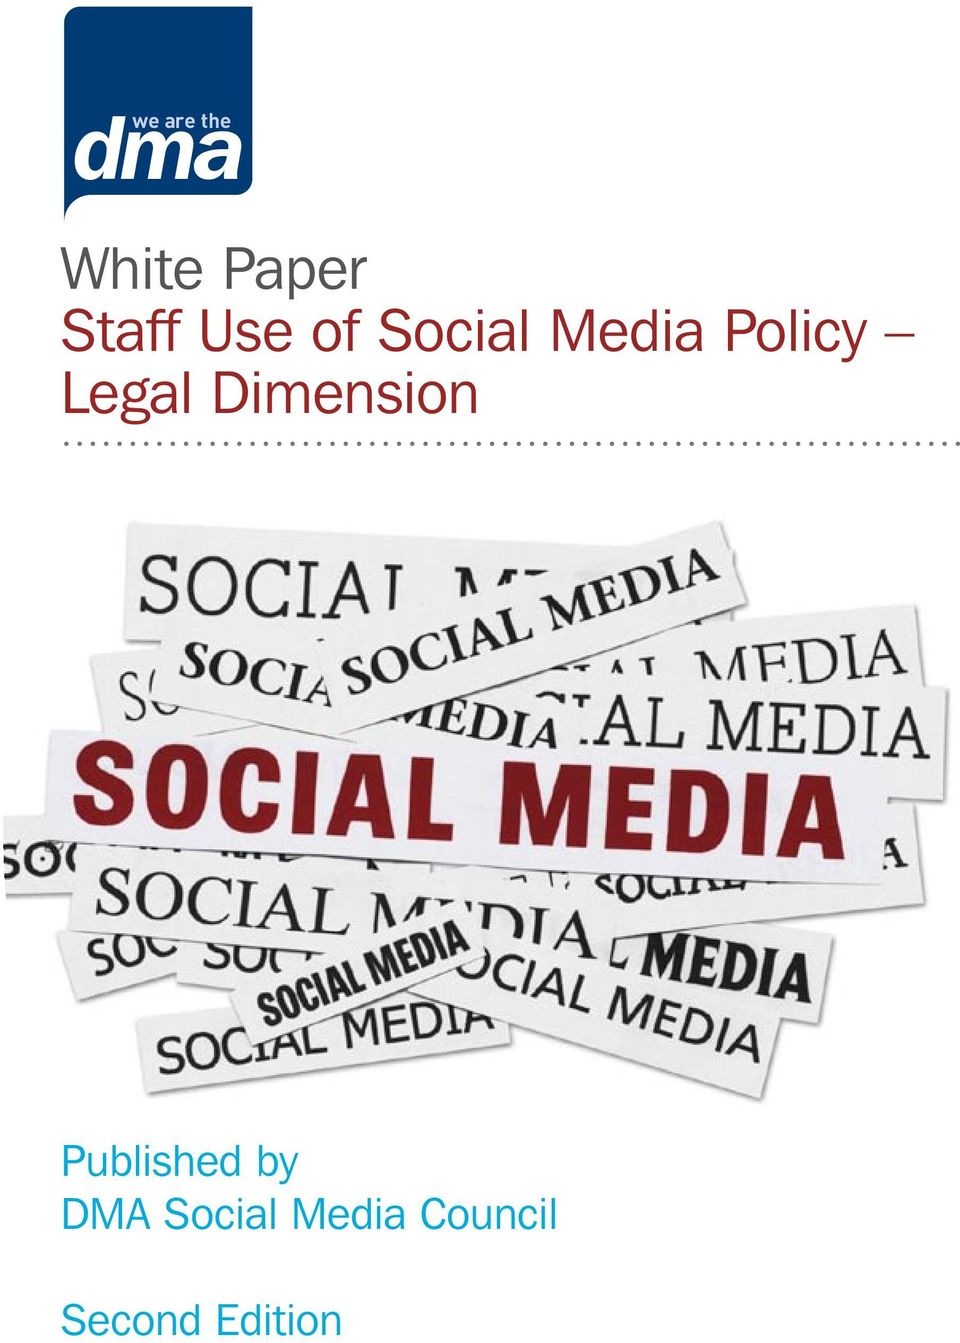 Policy Legal Dimension